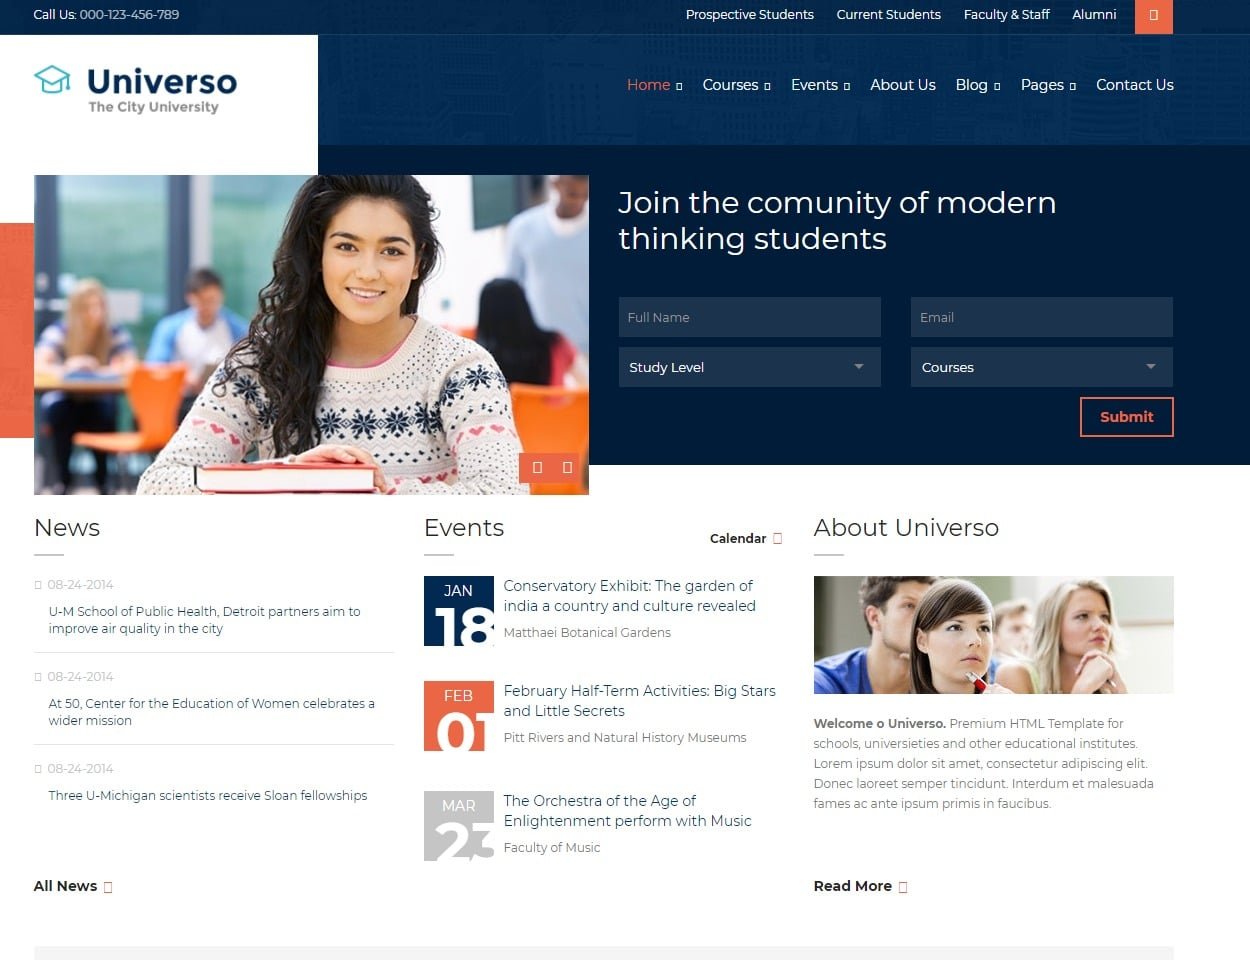 universo-html-education-website-template